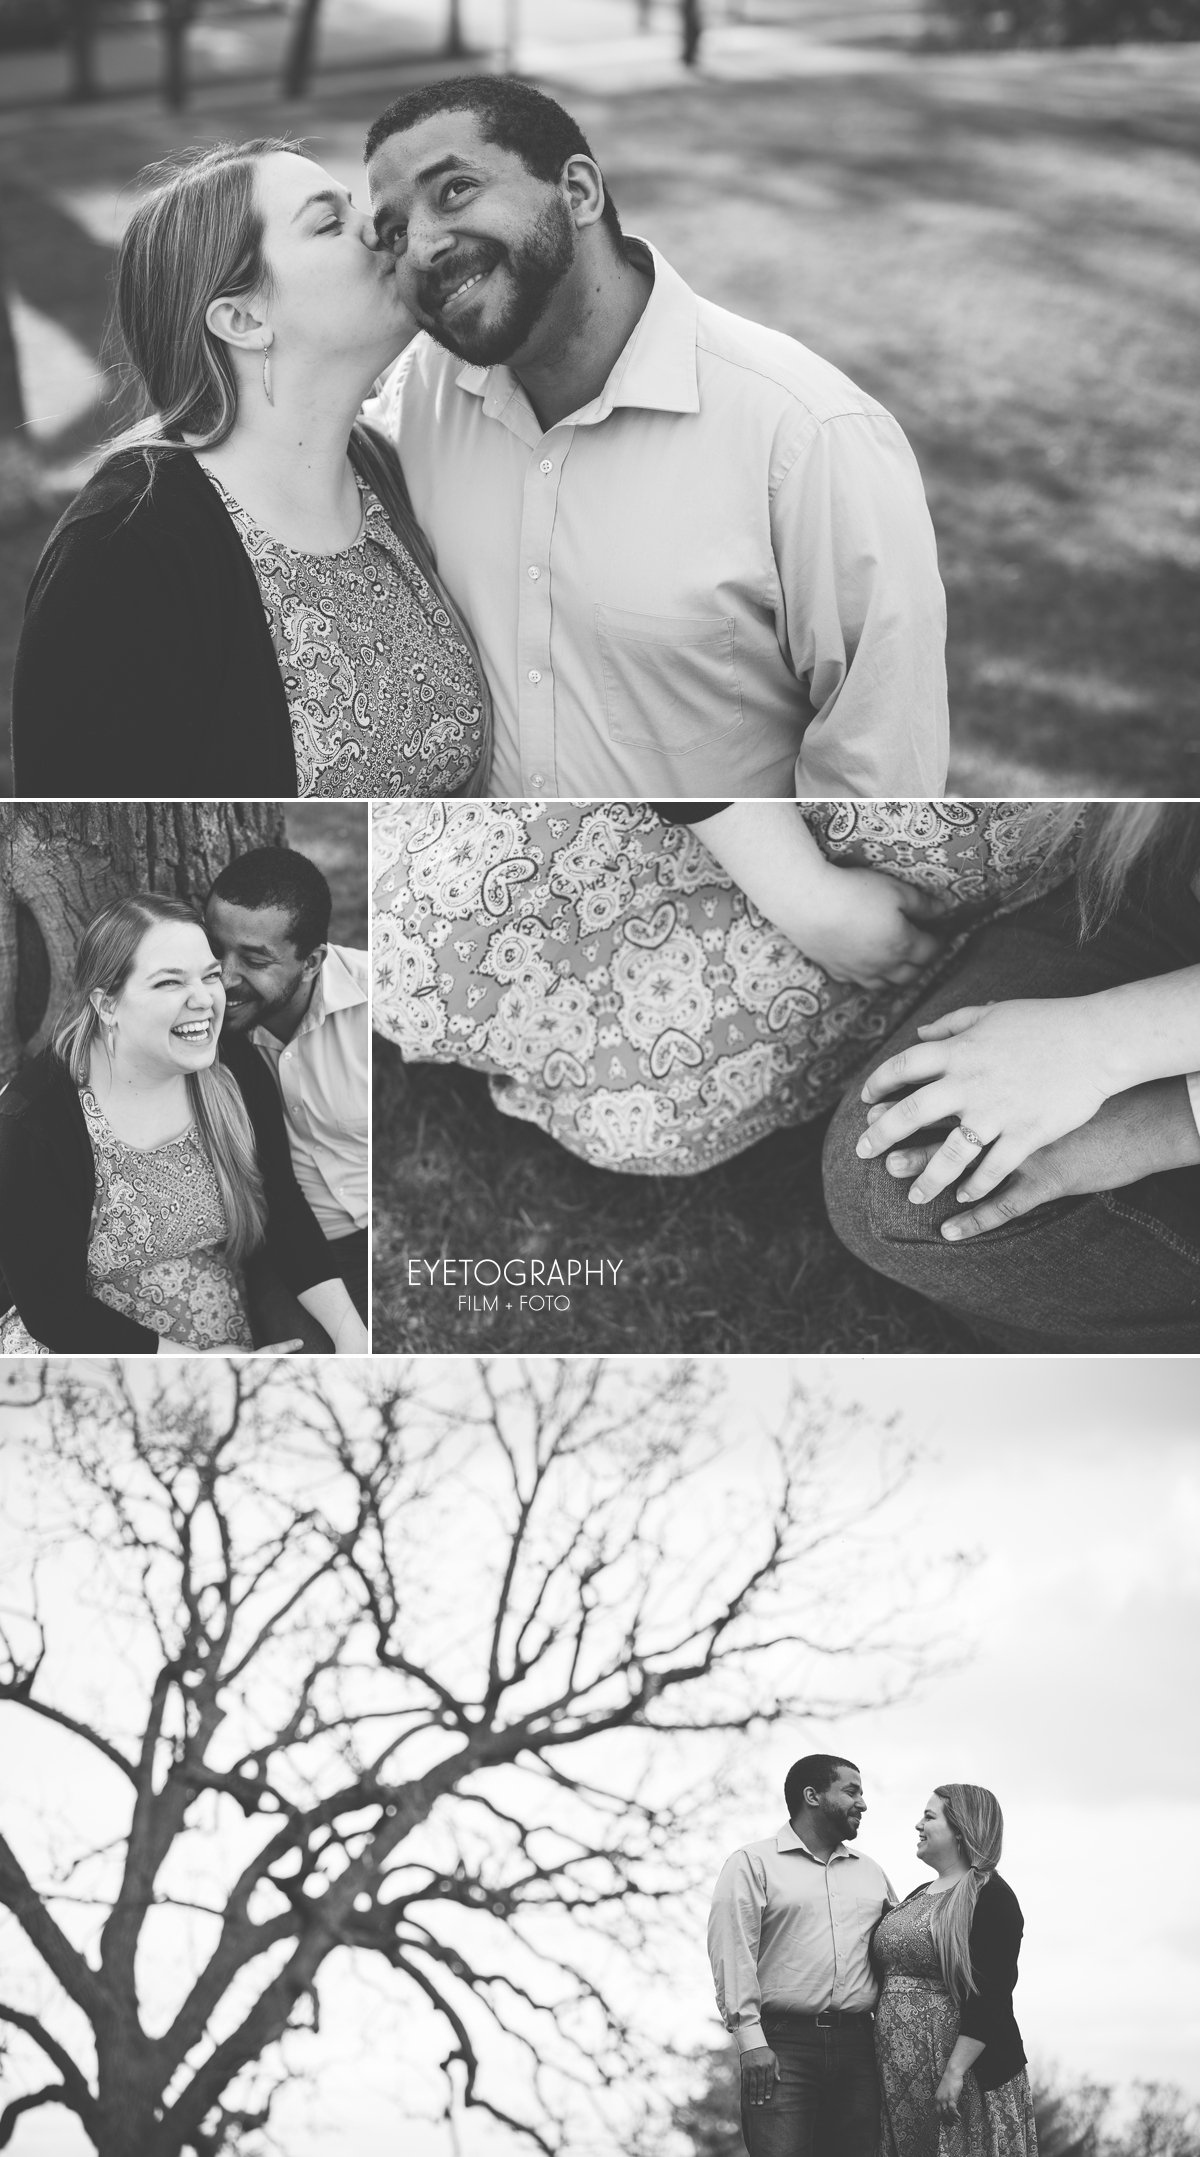 St. Paul Engagement Photography | Eyetography Film + Foto | Emily + Nate 2